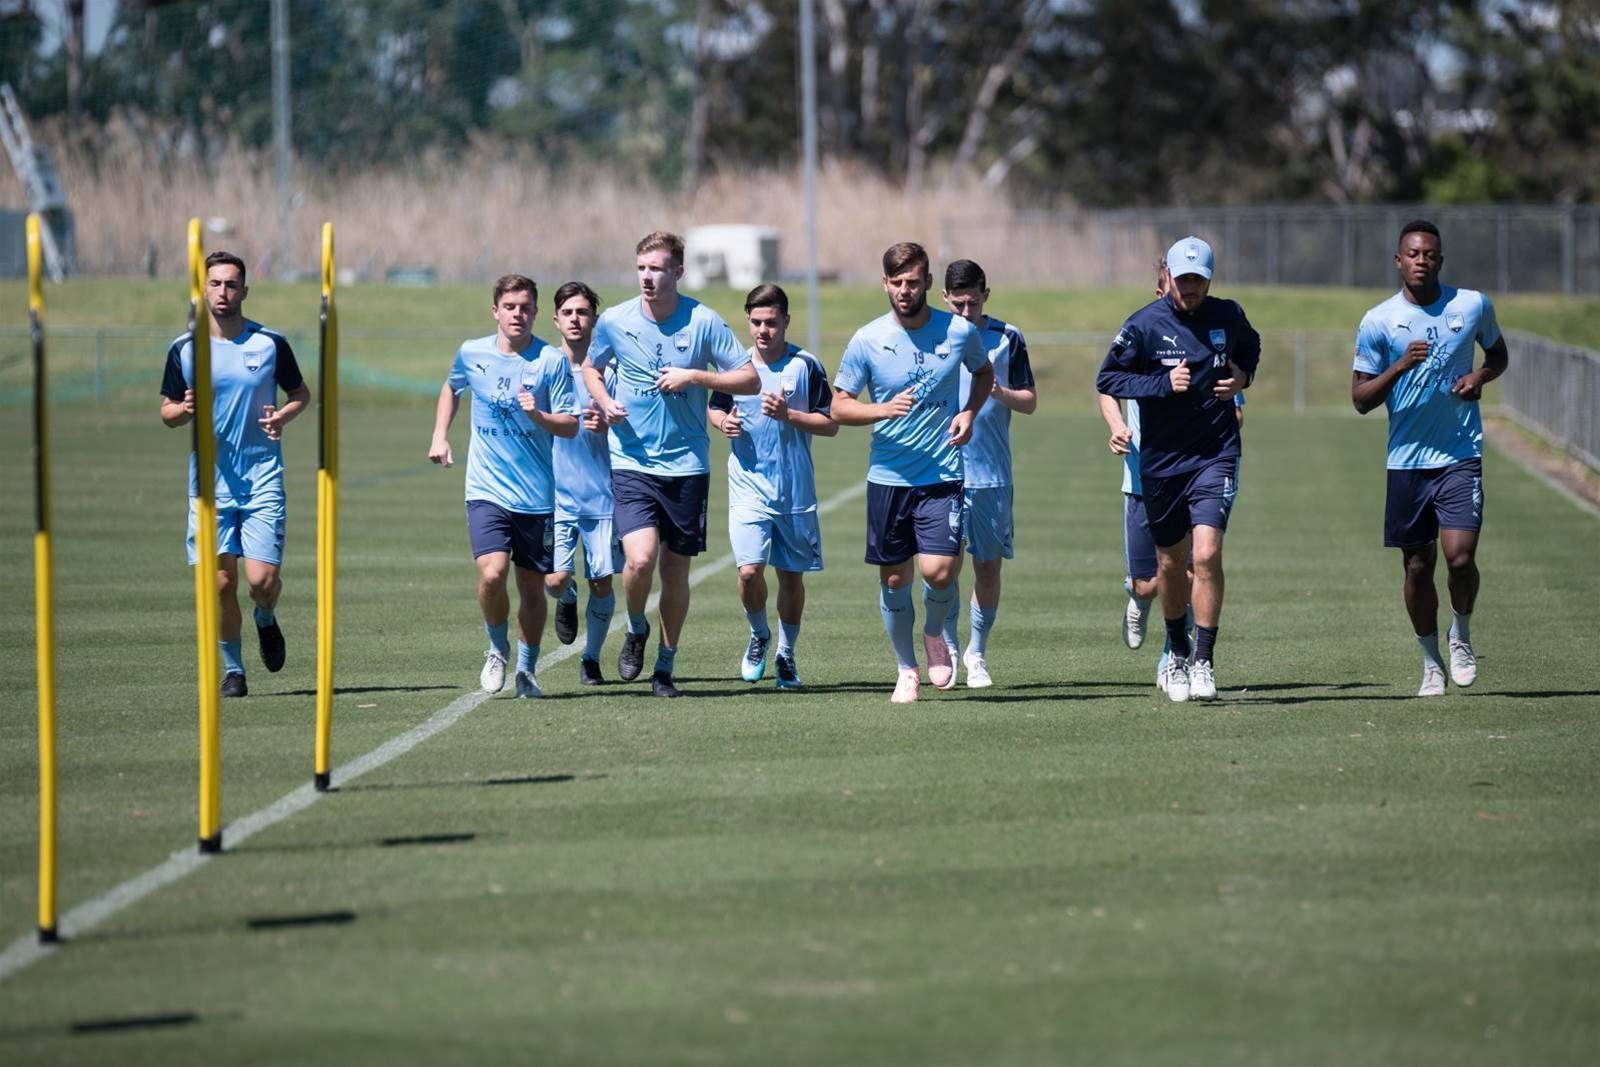 Pic Special: Sydney's next gen stars train